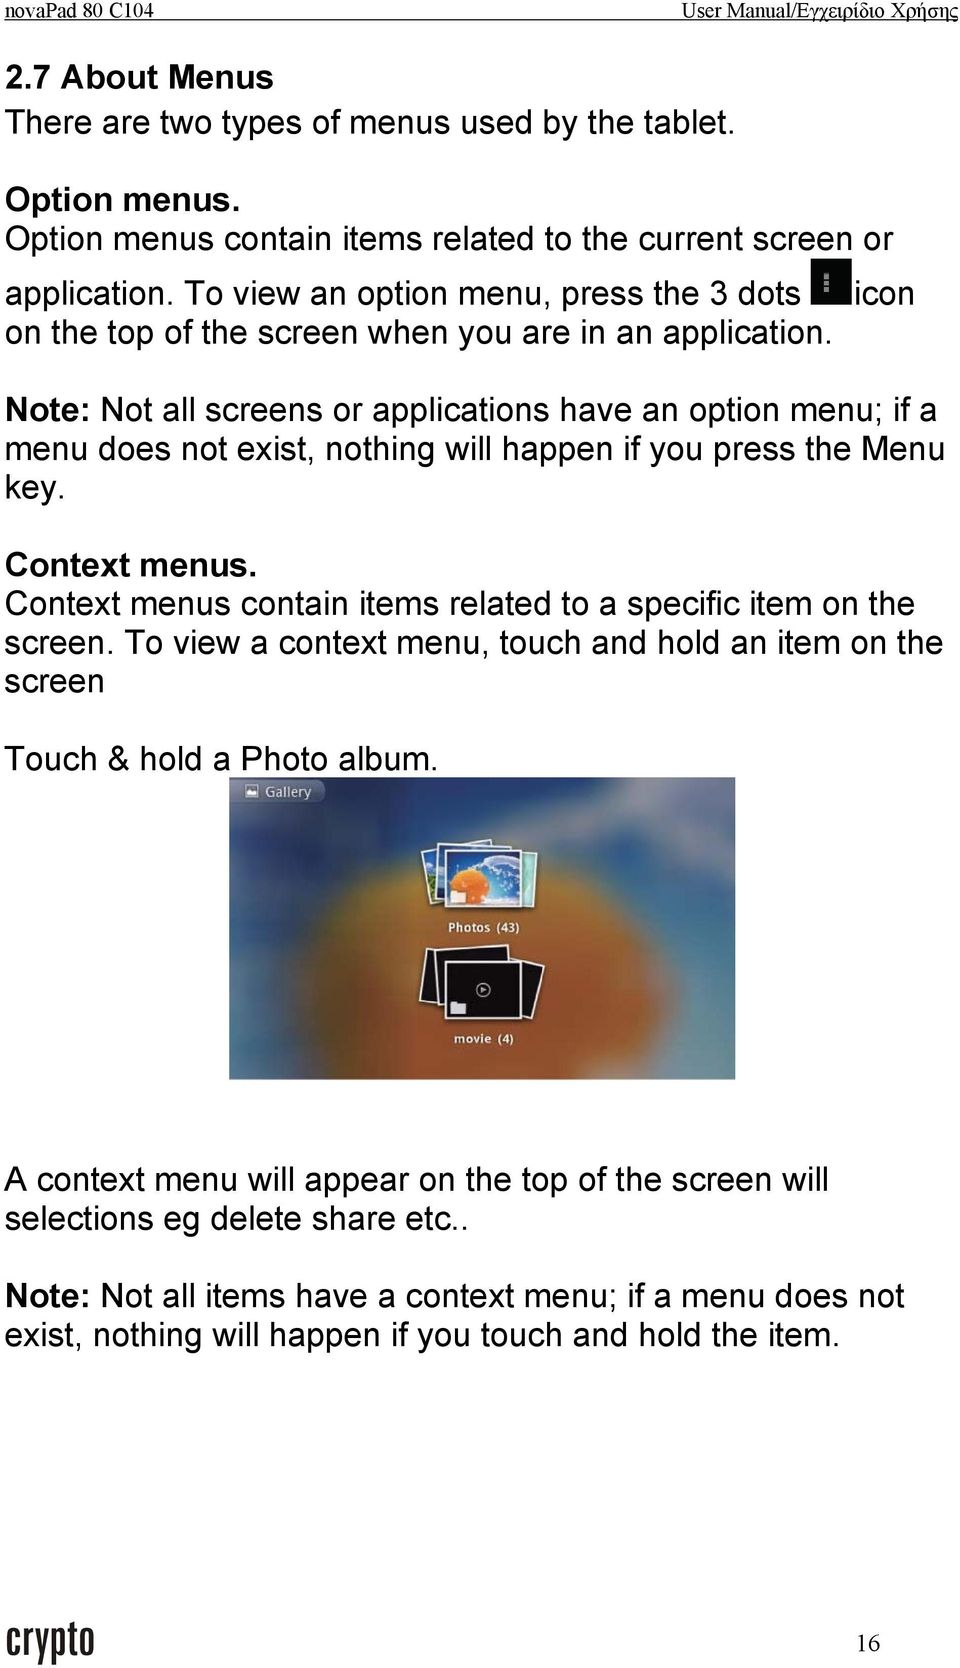 Note: Not all screens or applications have an option menu; if a menu does not exist, nothing will happen if you press the Menu key. Context menus.